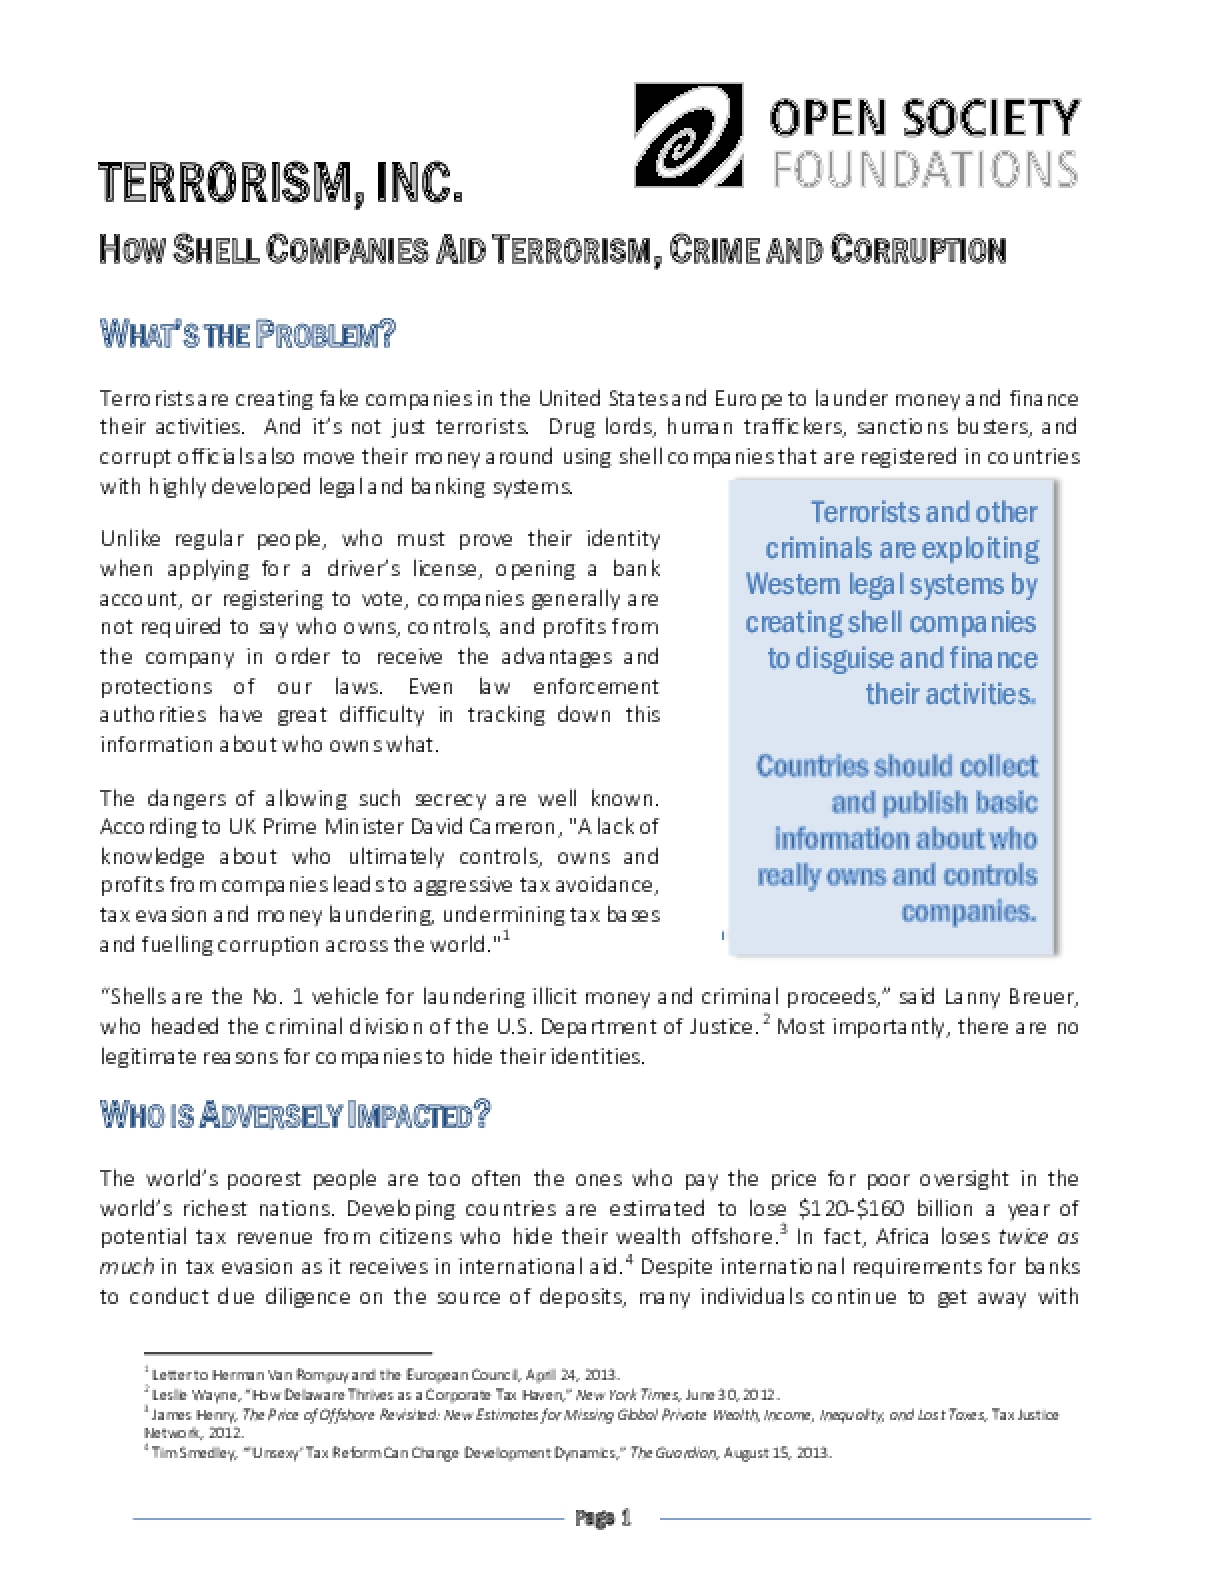 Terrorism, Inc.: How Shell Companies Aid Terrorism, Crime, and Corruption